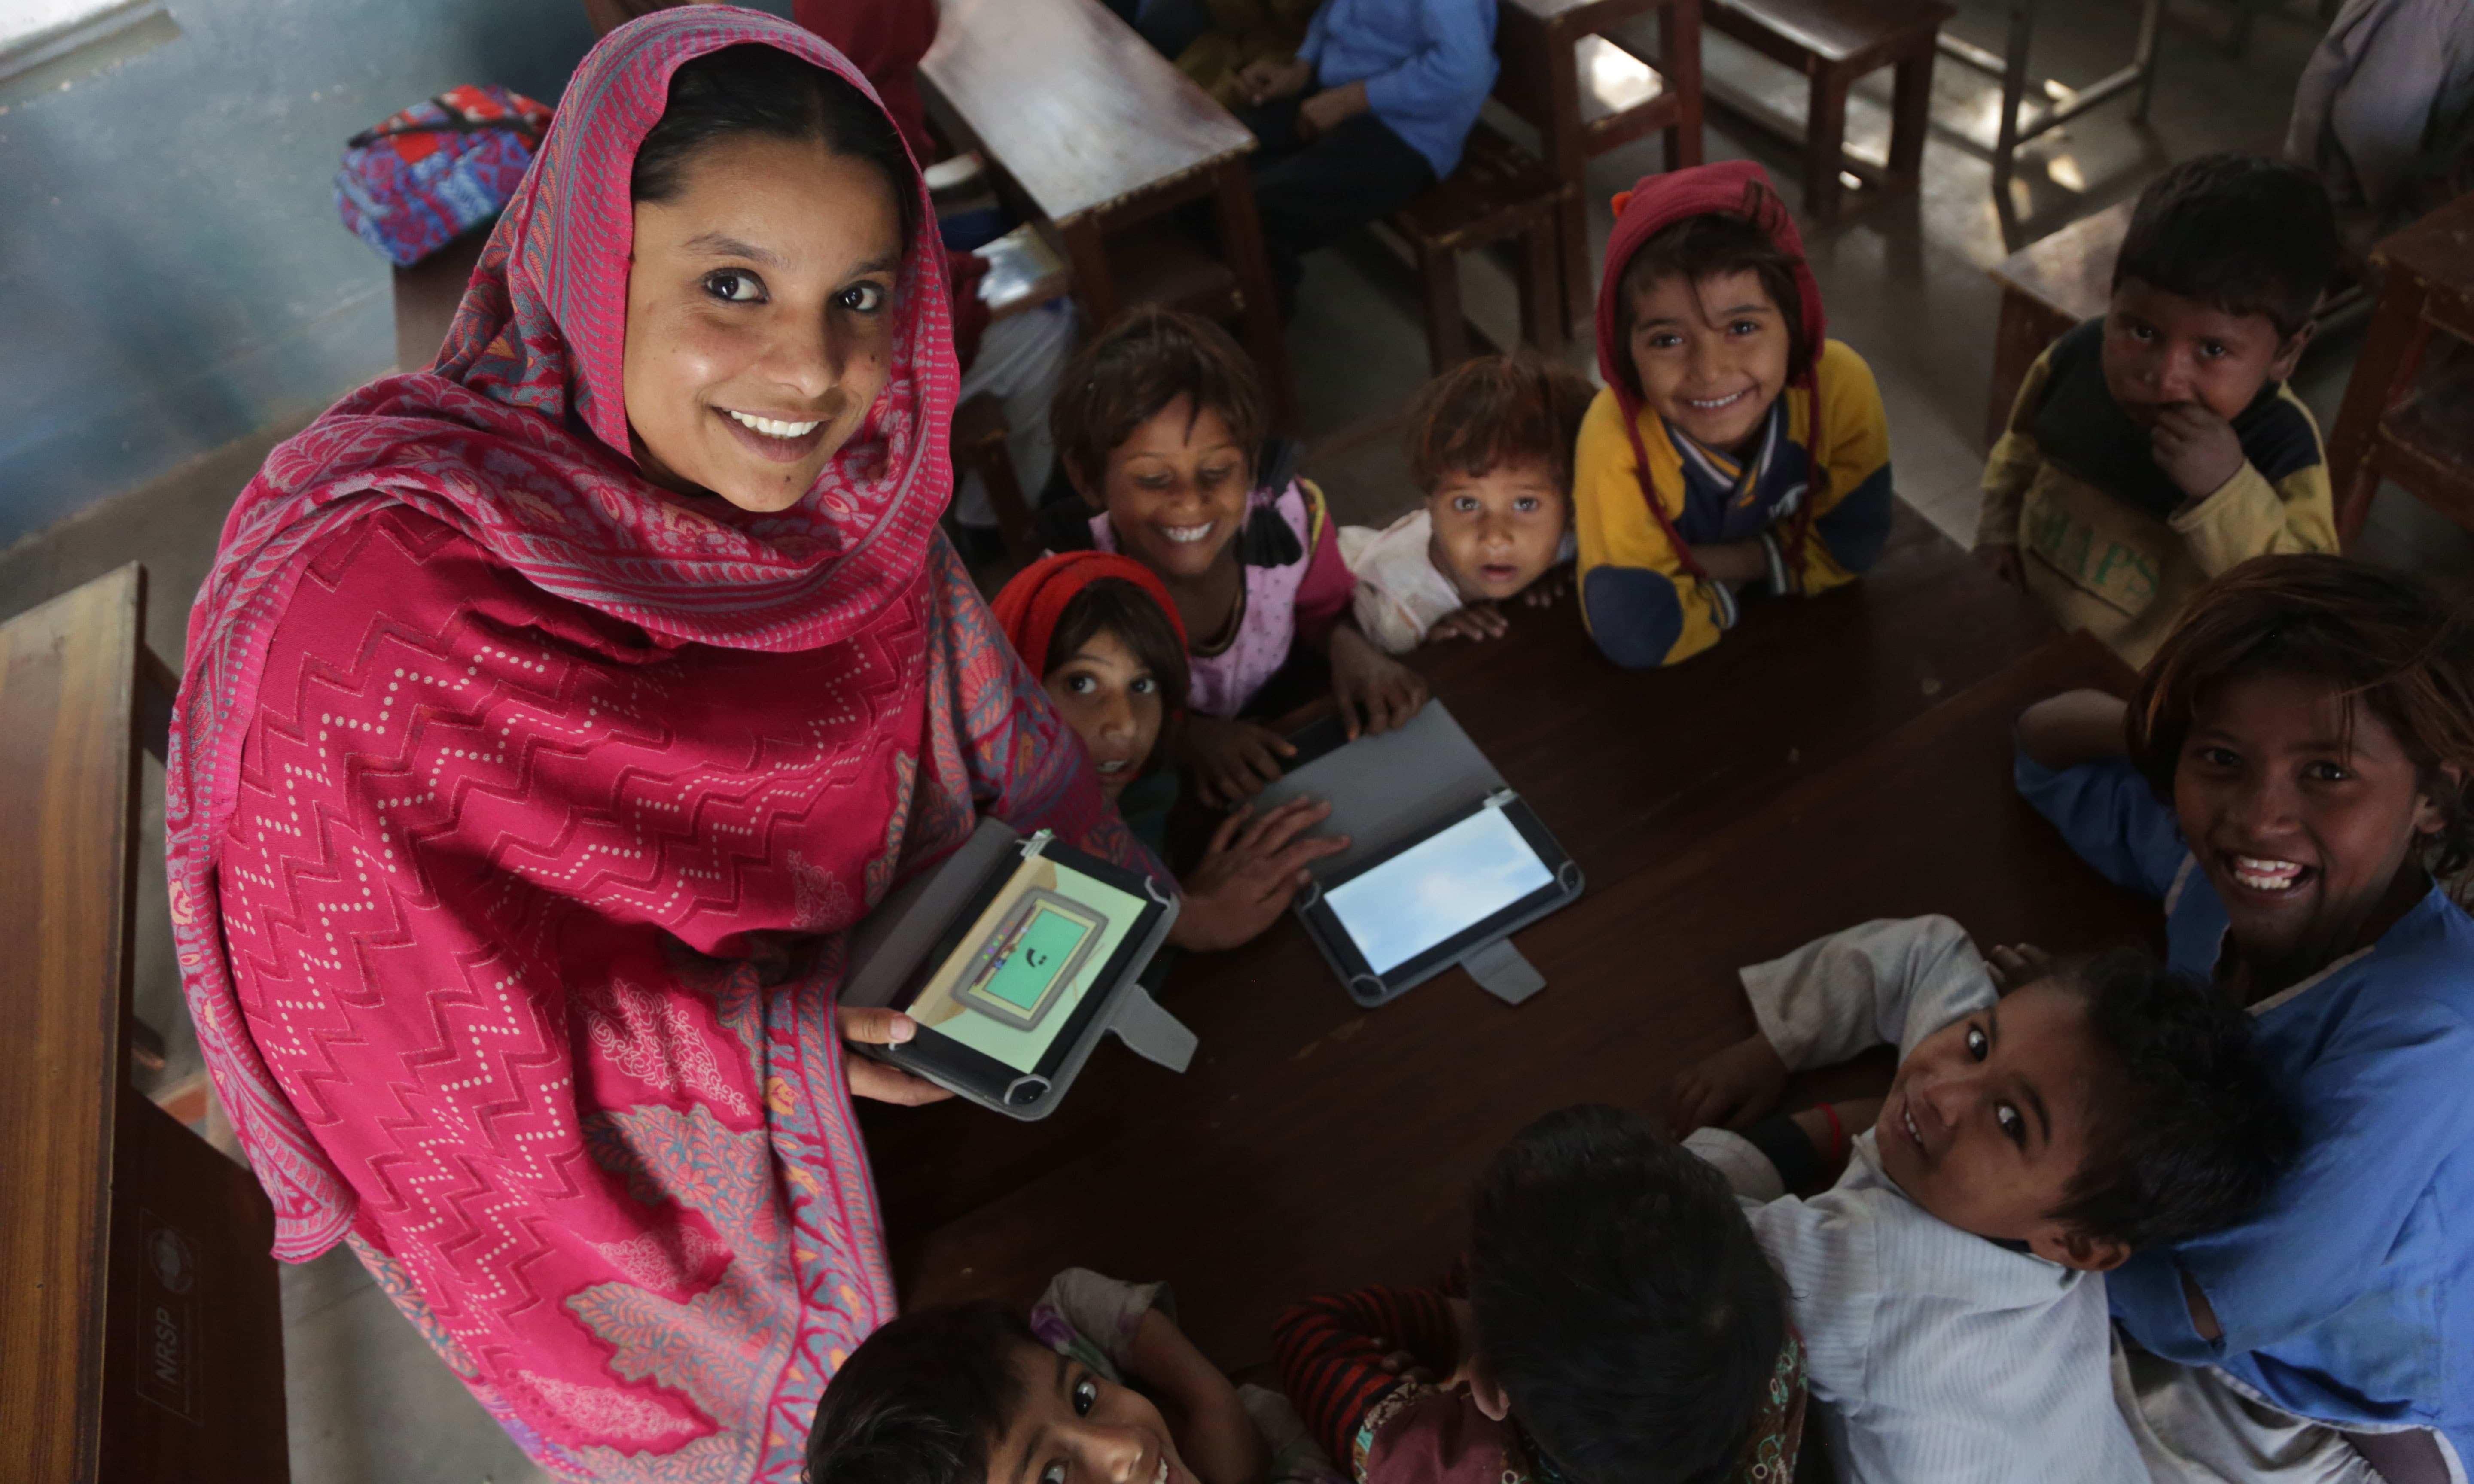 Founded in 2015, SABAQ is an education technology initiative that has reached 100,000 children in low-cost and low resource environments till date. — Photo courtesy: SABAQ